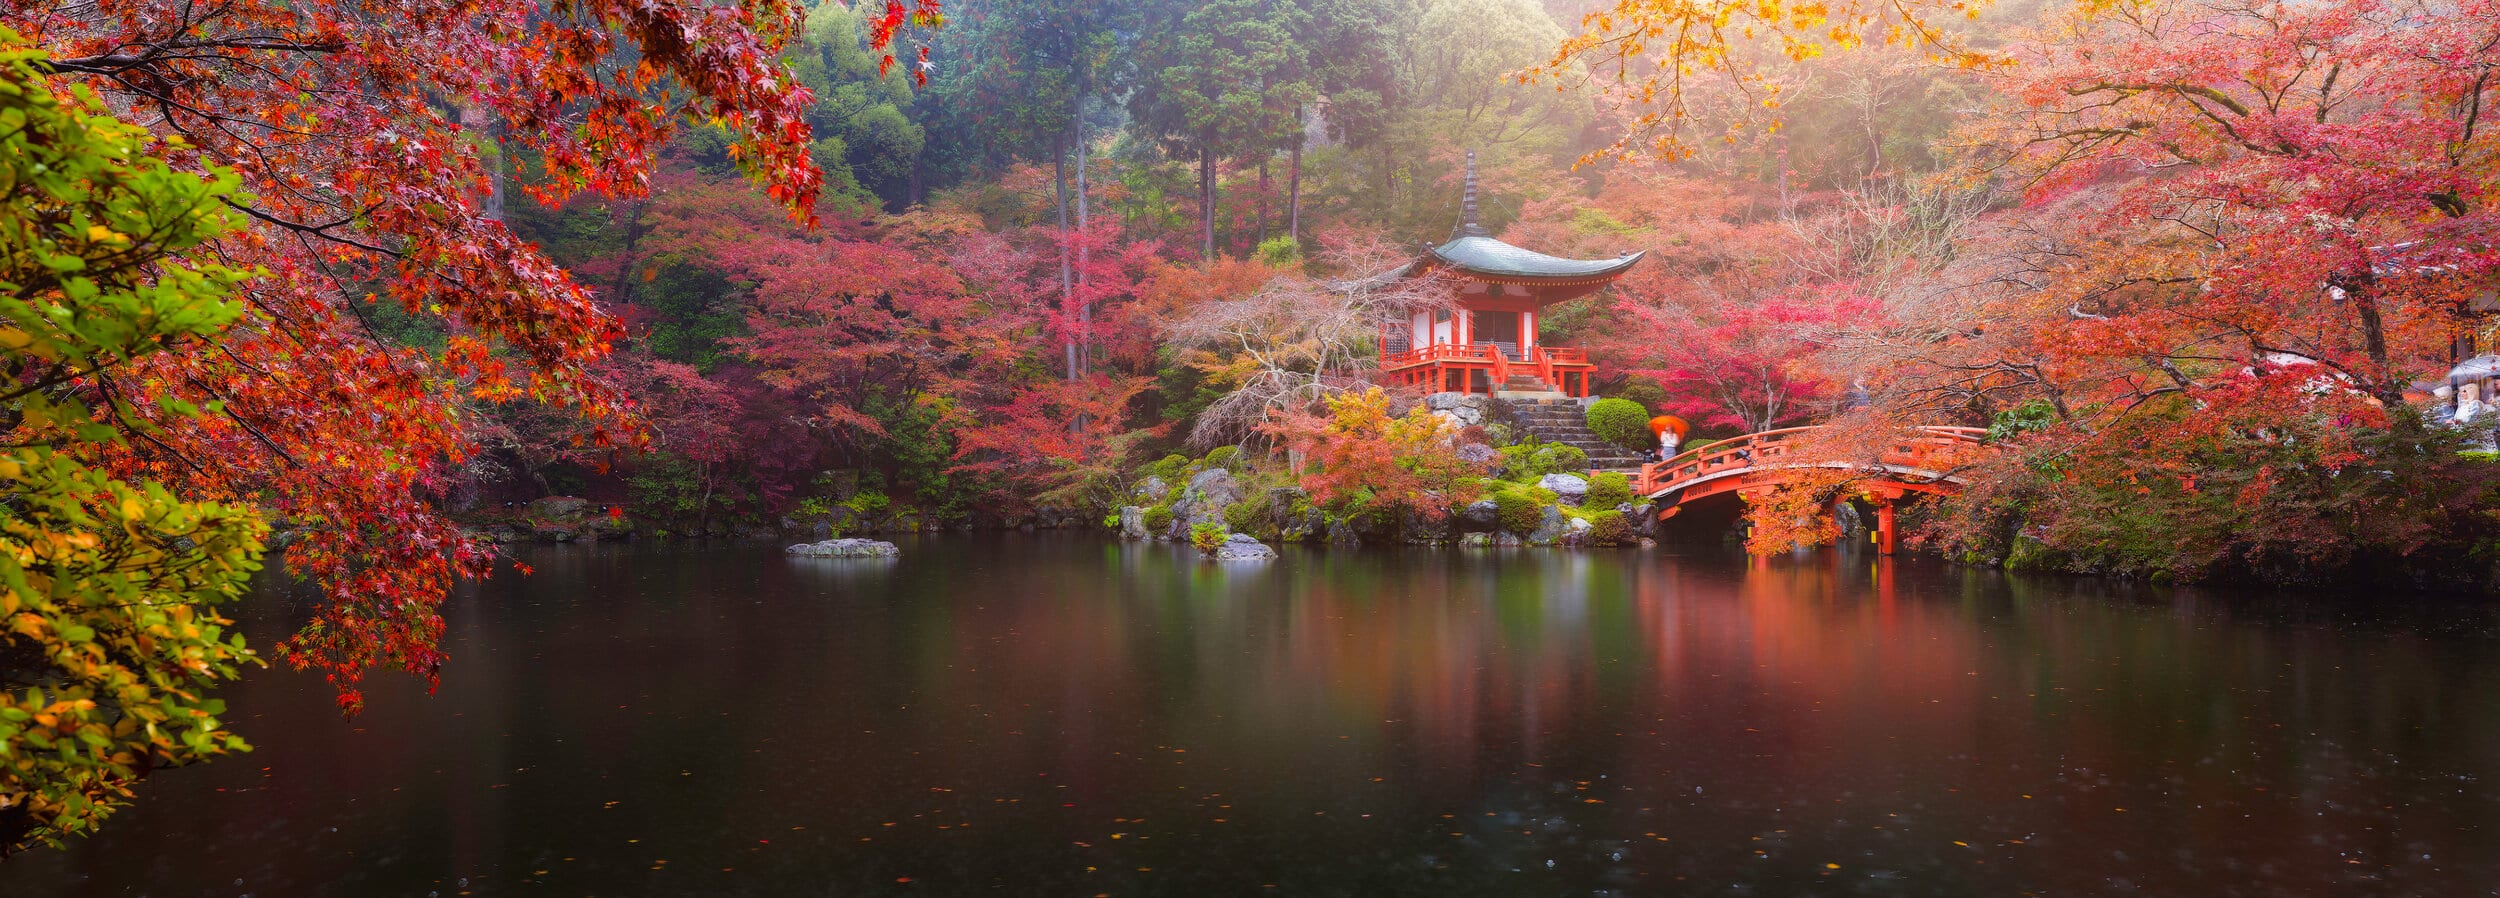 Japanese Pond in fall